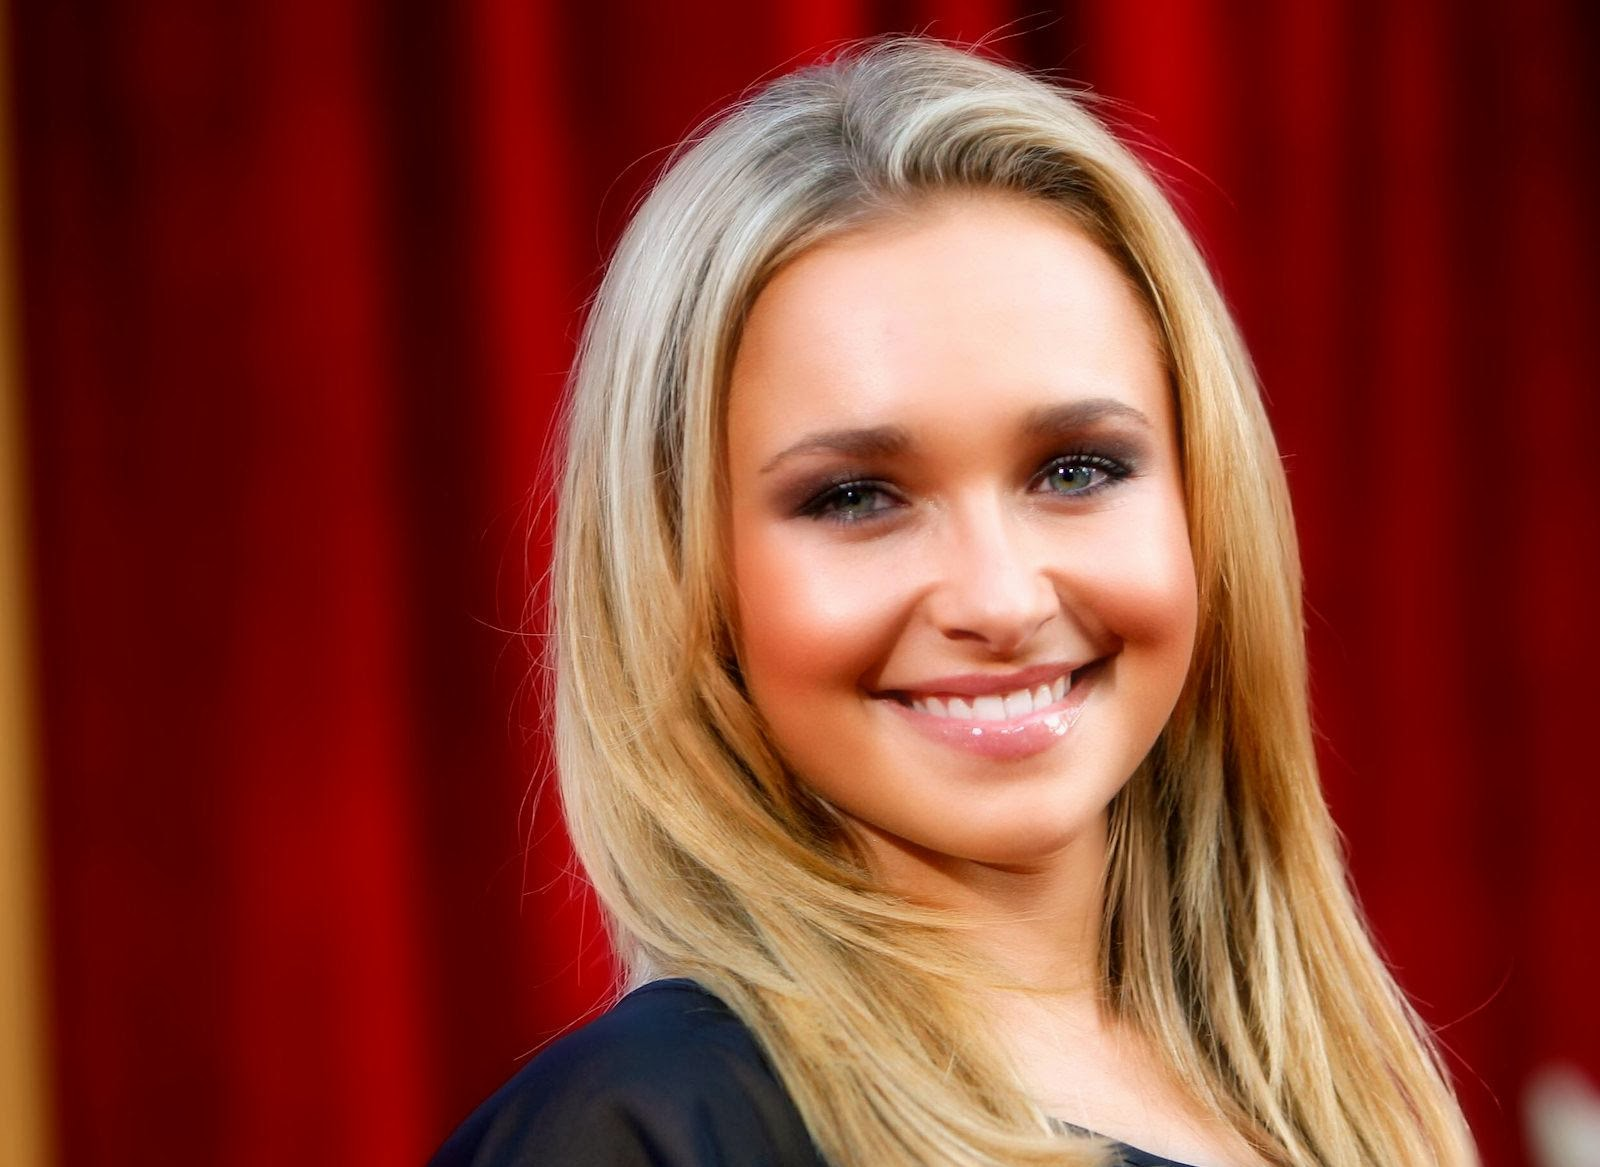 hayden panettiere nashville promo wallpapers - Hayden Panettiere Nashville Promo Wallpapers HD